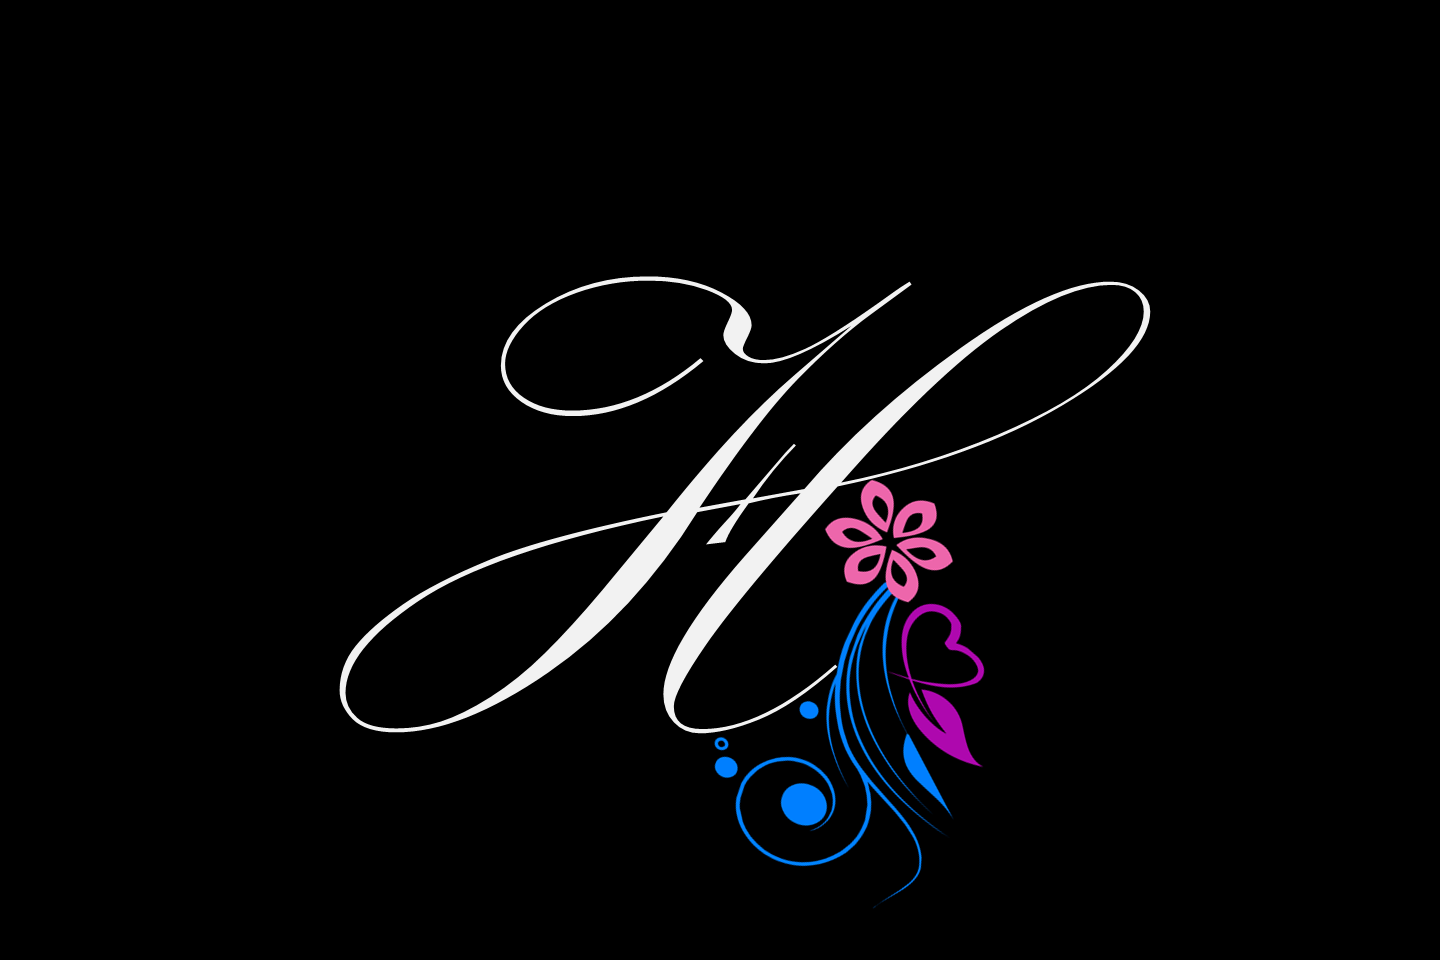 Letter H stylish hd wallpapers and fb covers 1440x960